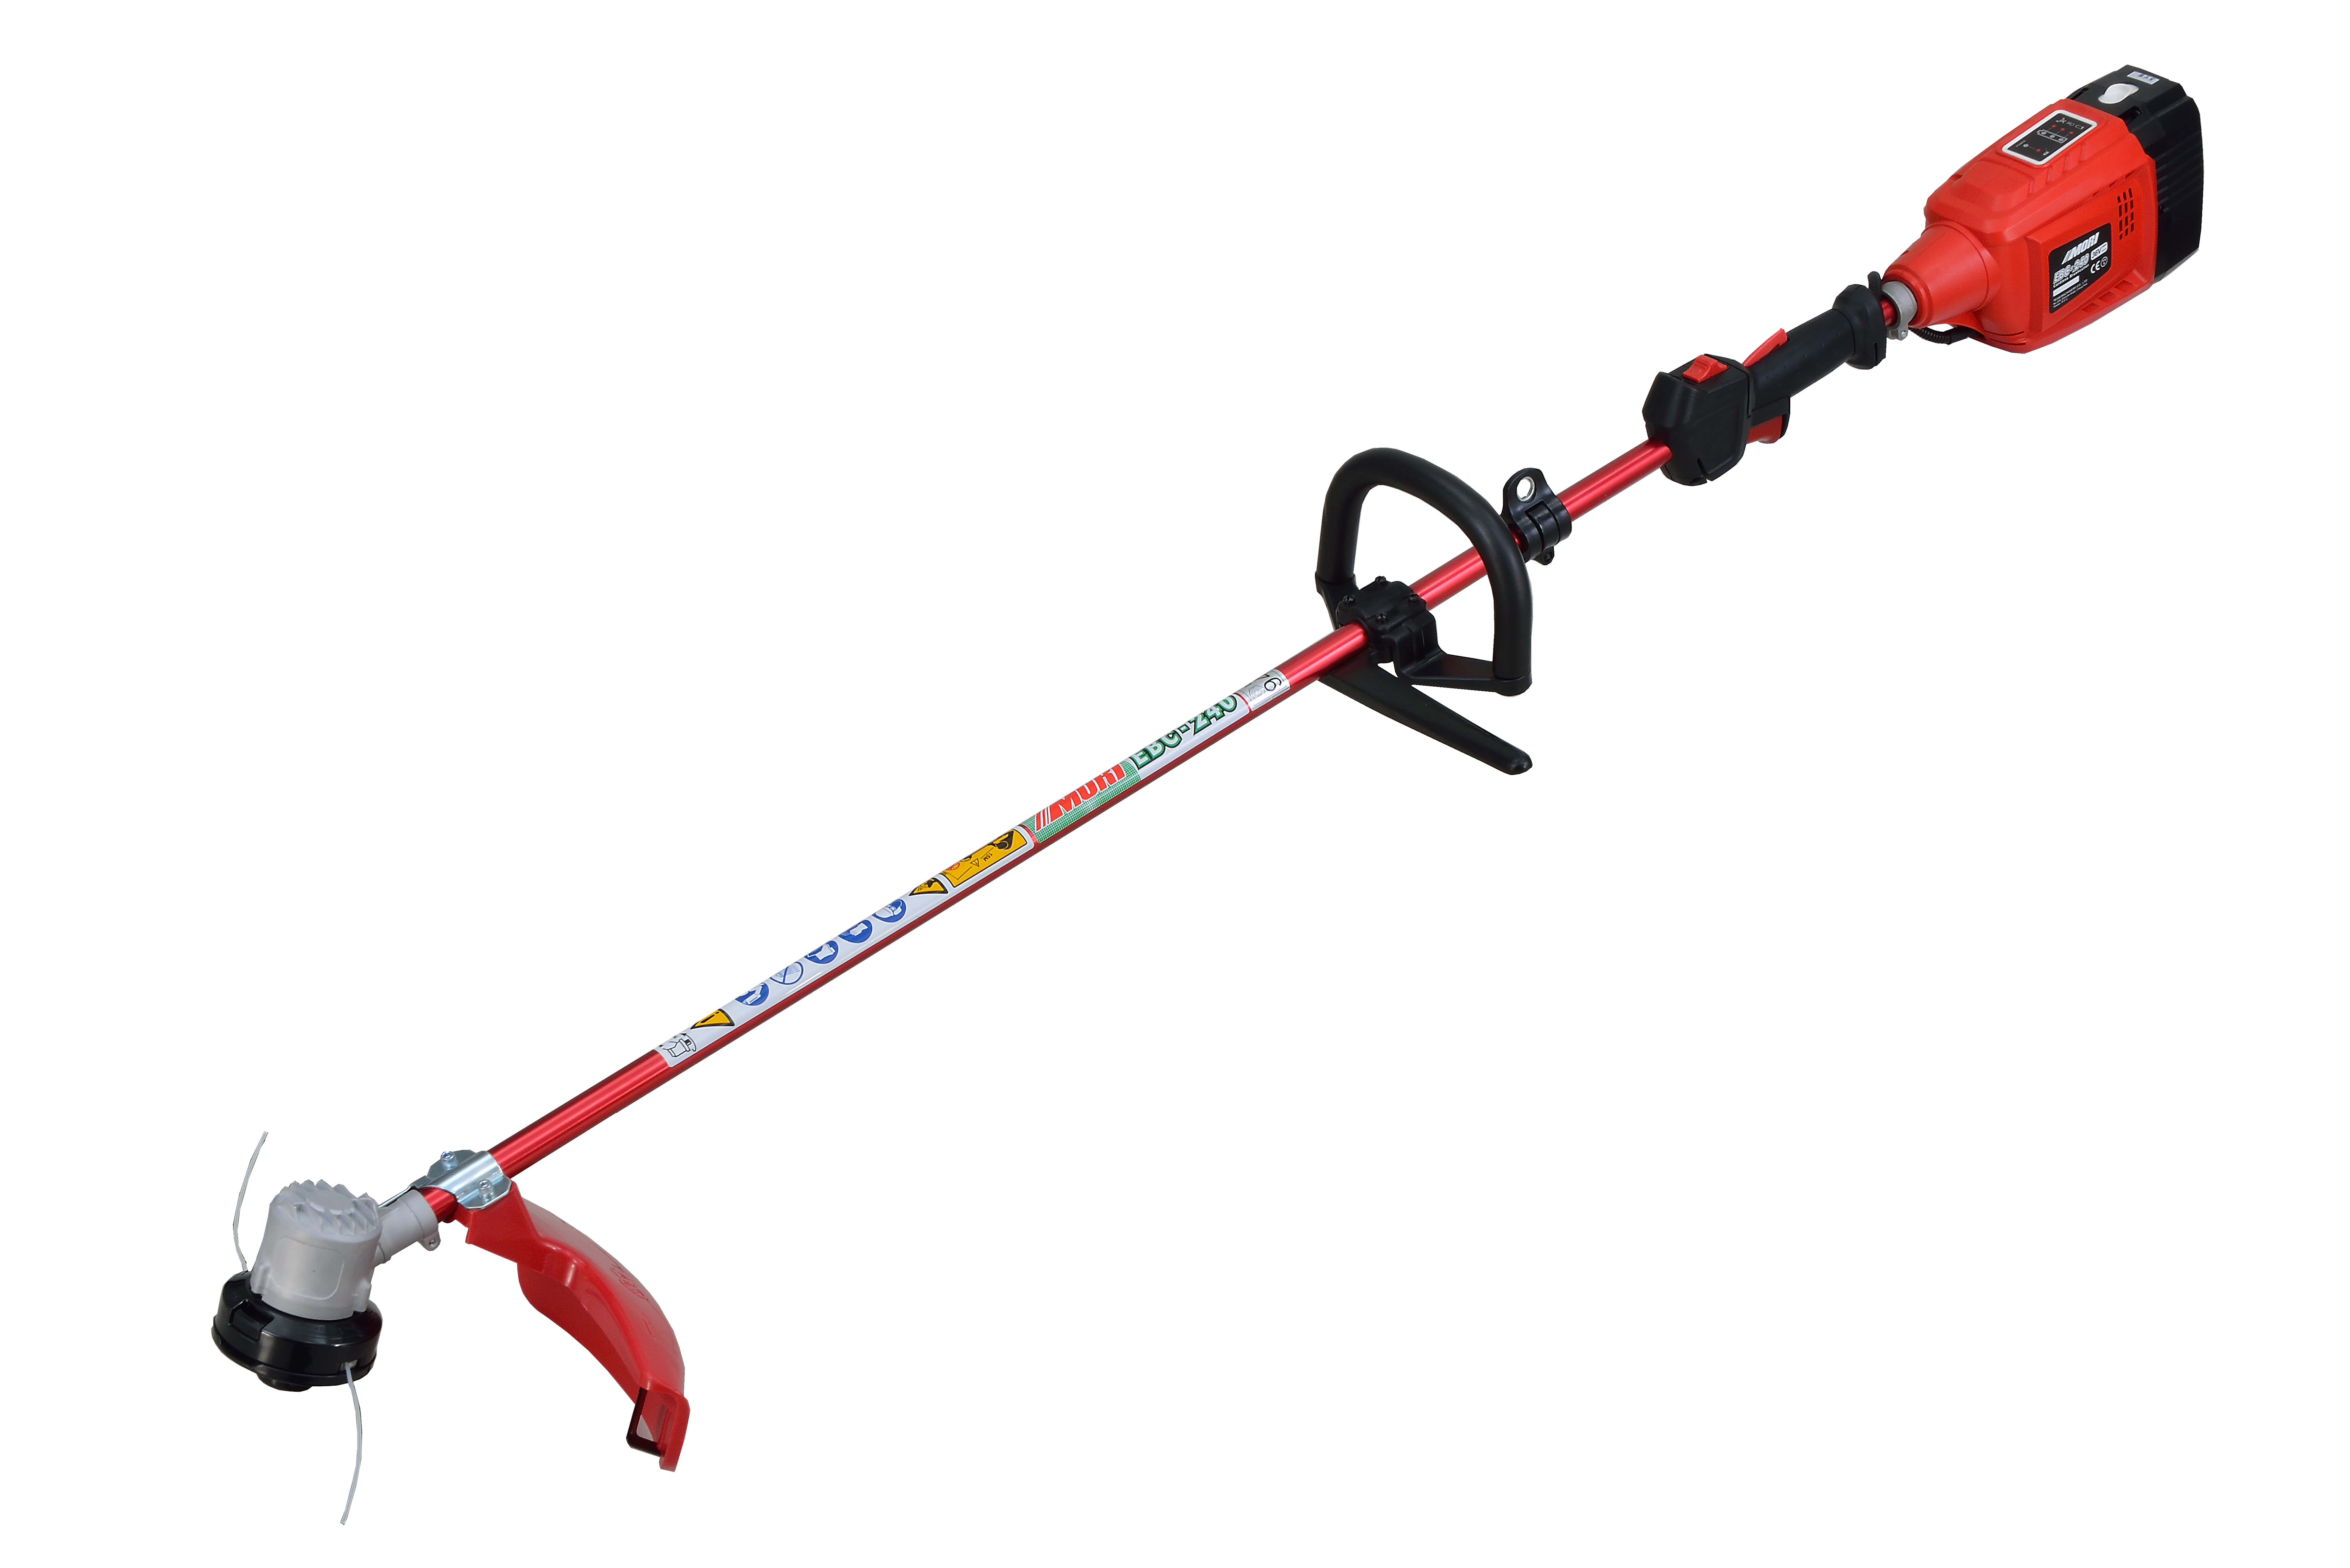 taiwan professional electric brush cutter and earth auger manufacturer  power pole saw  garden